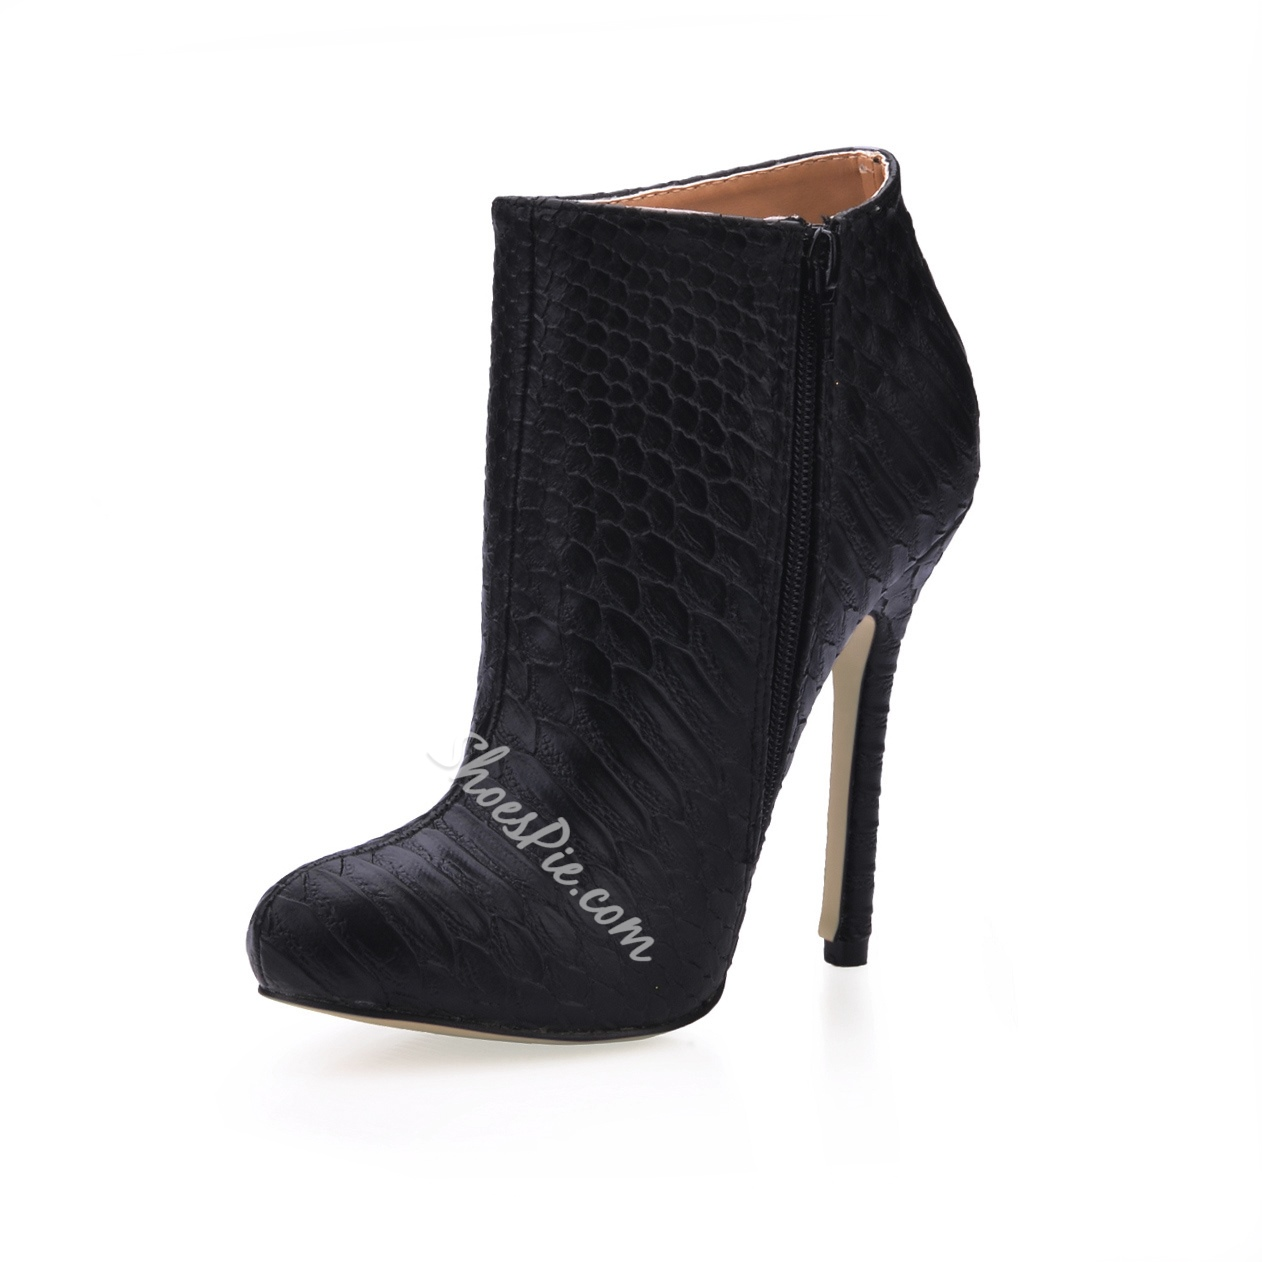 New Arrival Upper Stiletto Heels Closed-toe Boots with Snakeskin Print